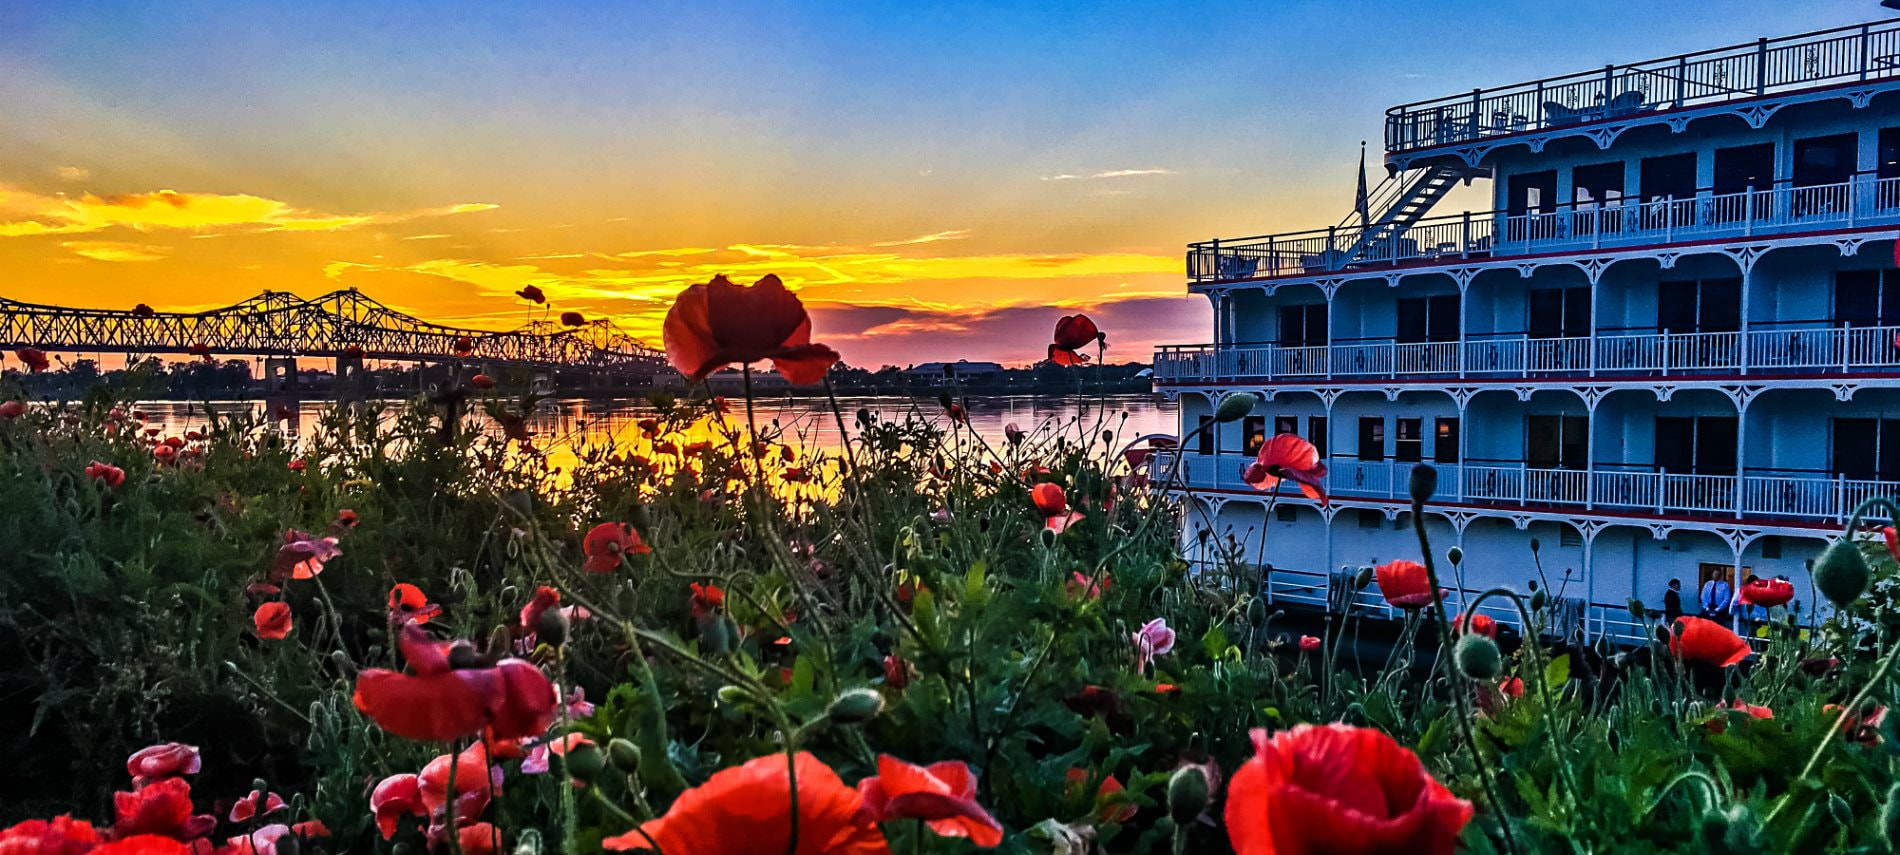 Gorgeous view of red flowers overlooking the water and bridge during a bright orange and pink sunset with condos on the side